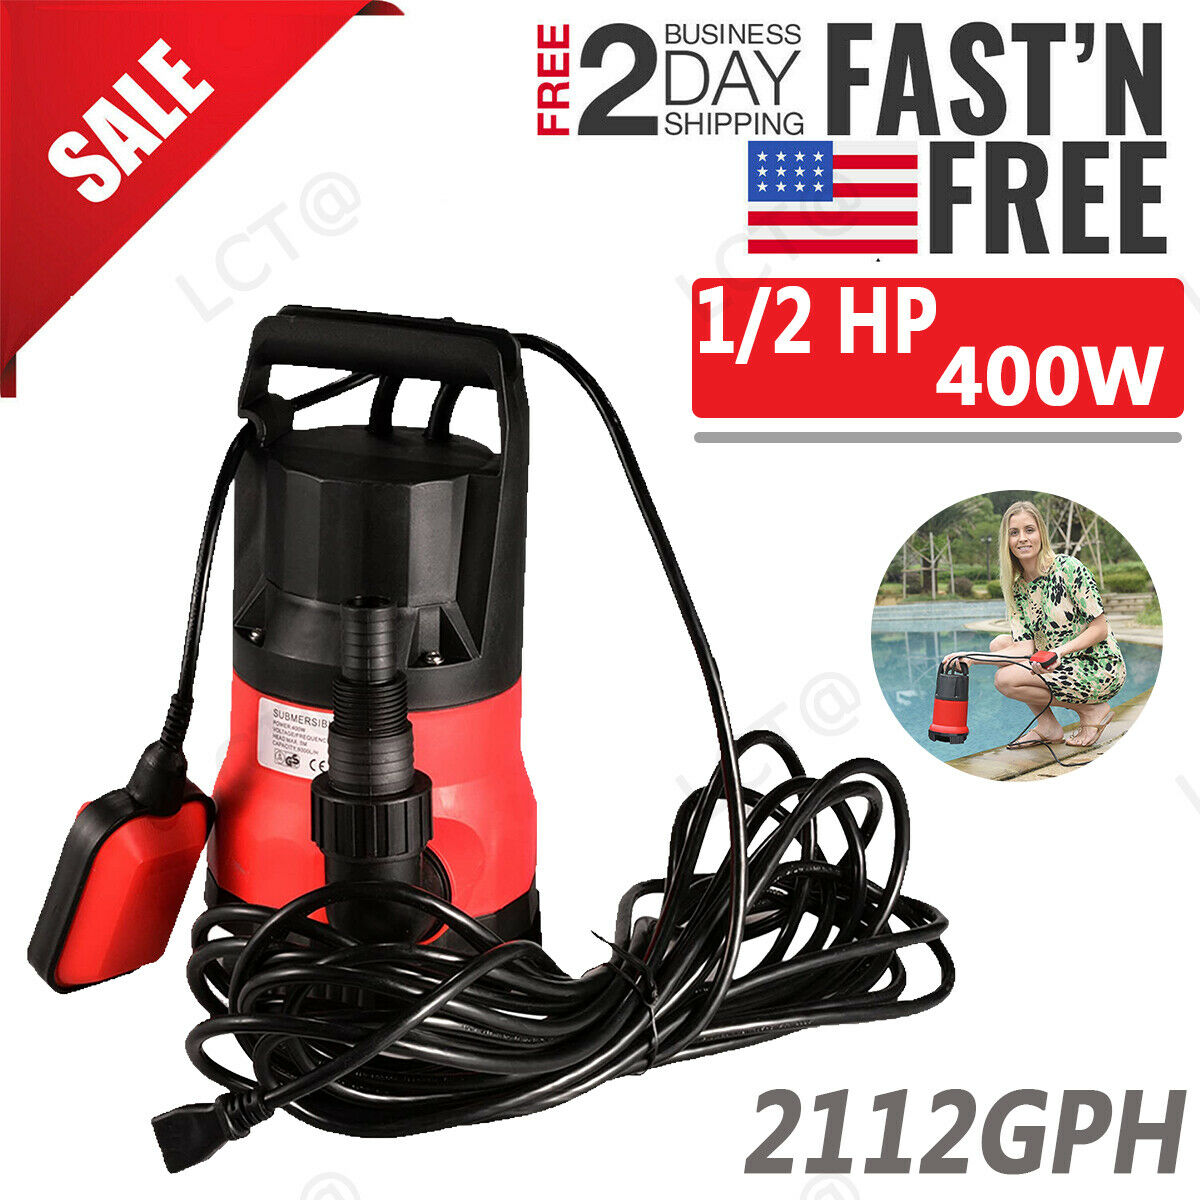 1/2 HP 400W Super Electric Submersible WateR Swimming Pool D